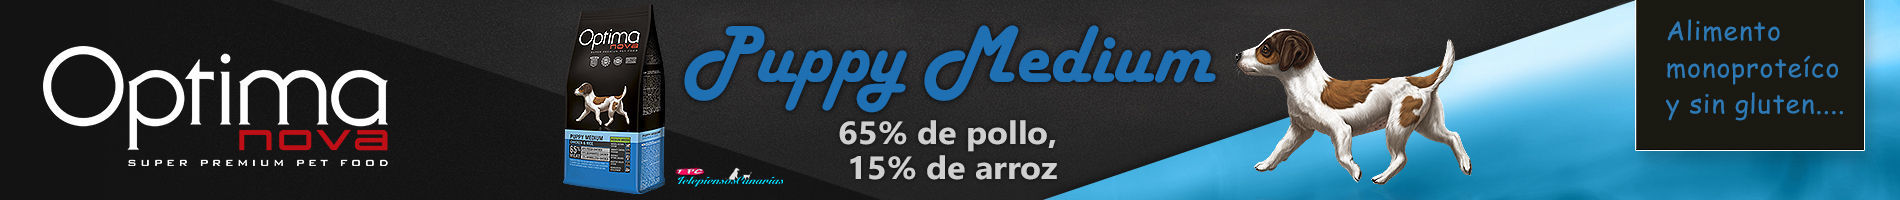 Optima nova puppy medium, con 65% pollo y 15% arroz.